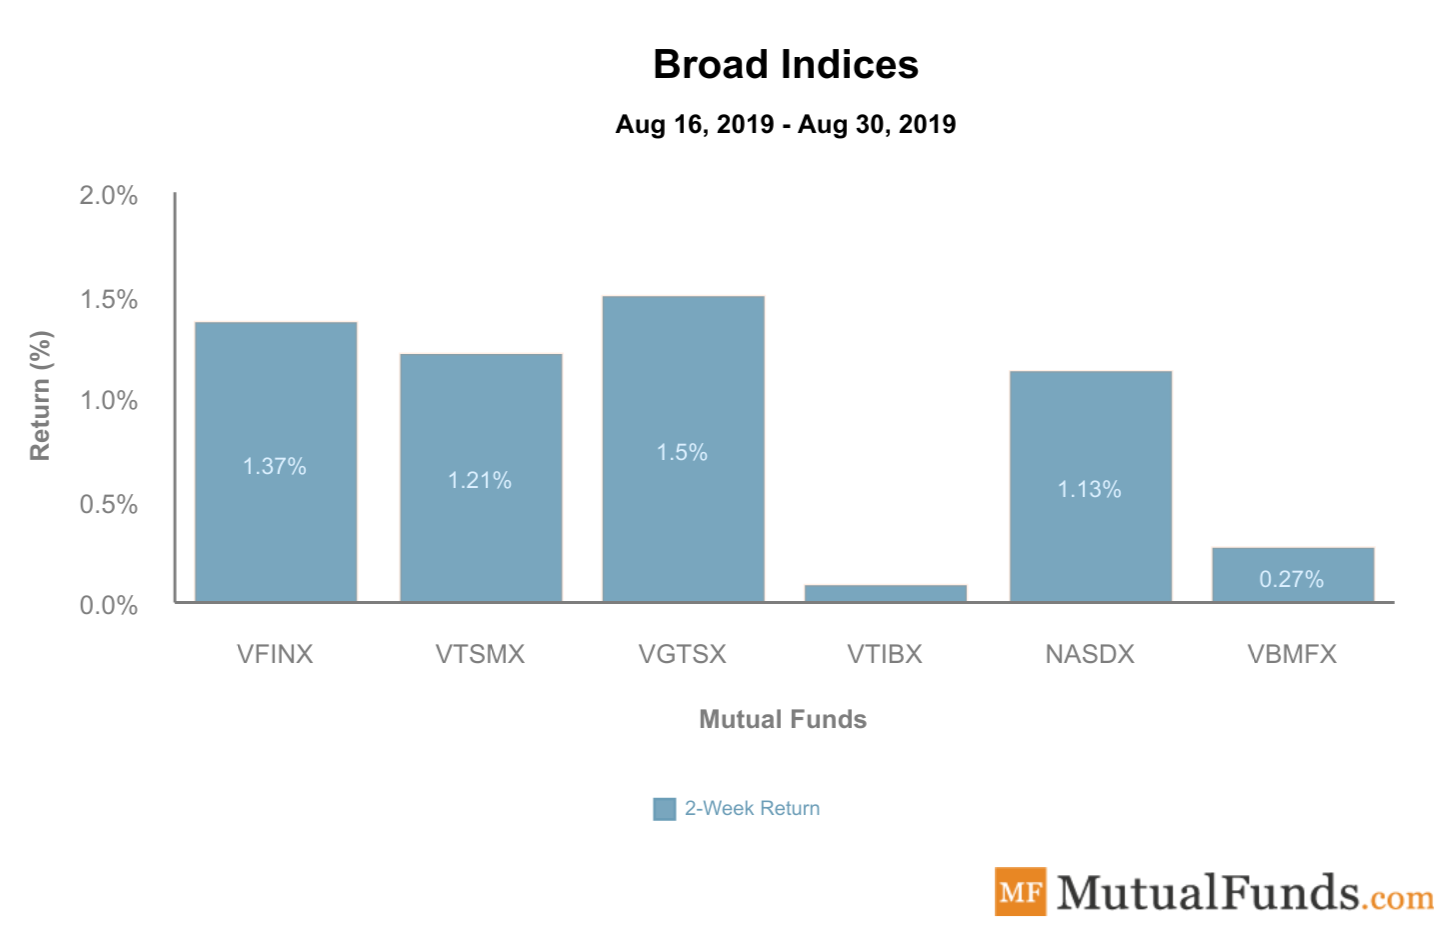 Broad Indices Sep 3, 2019